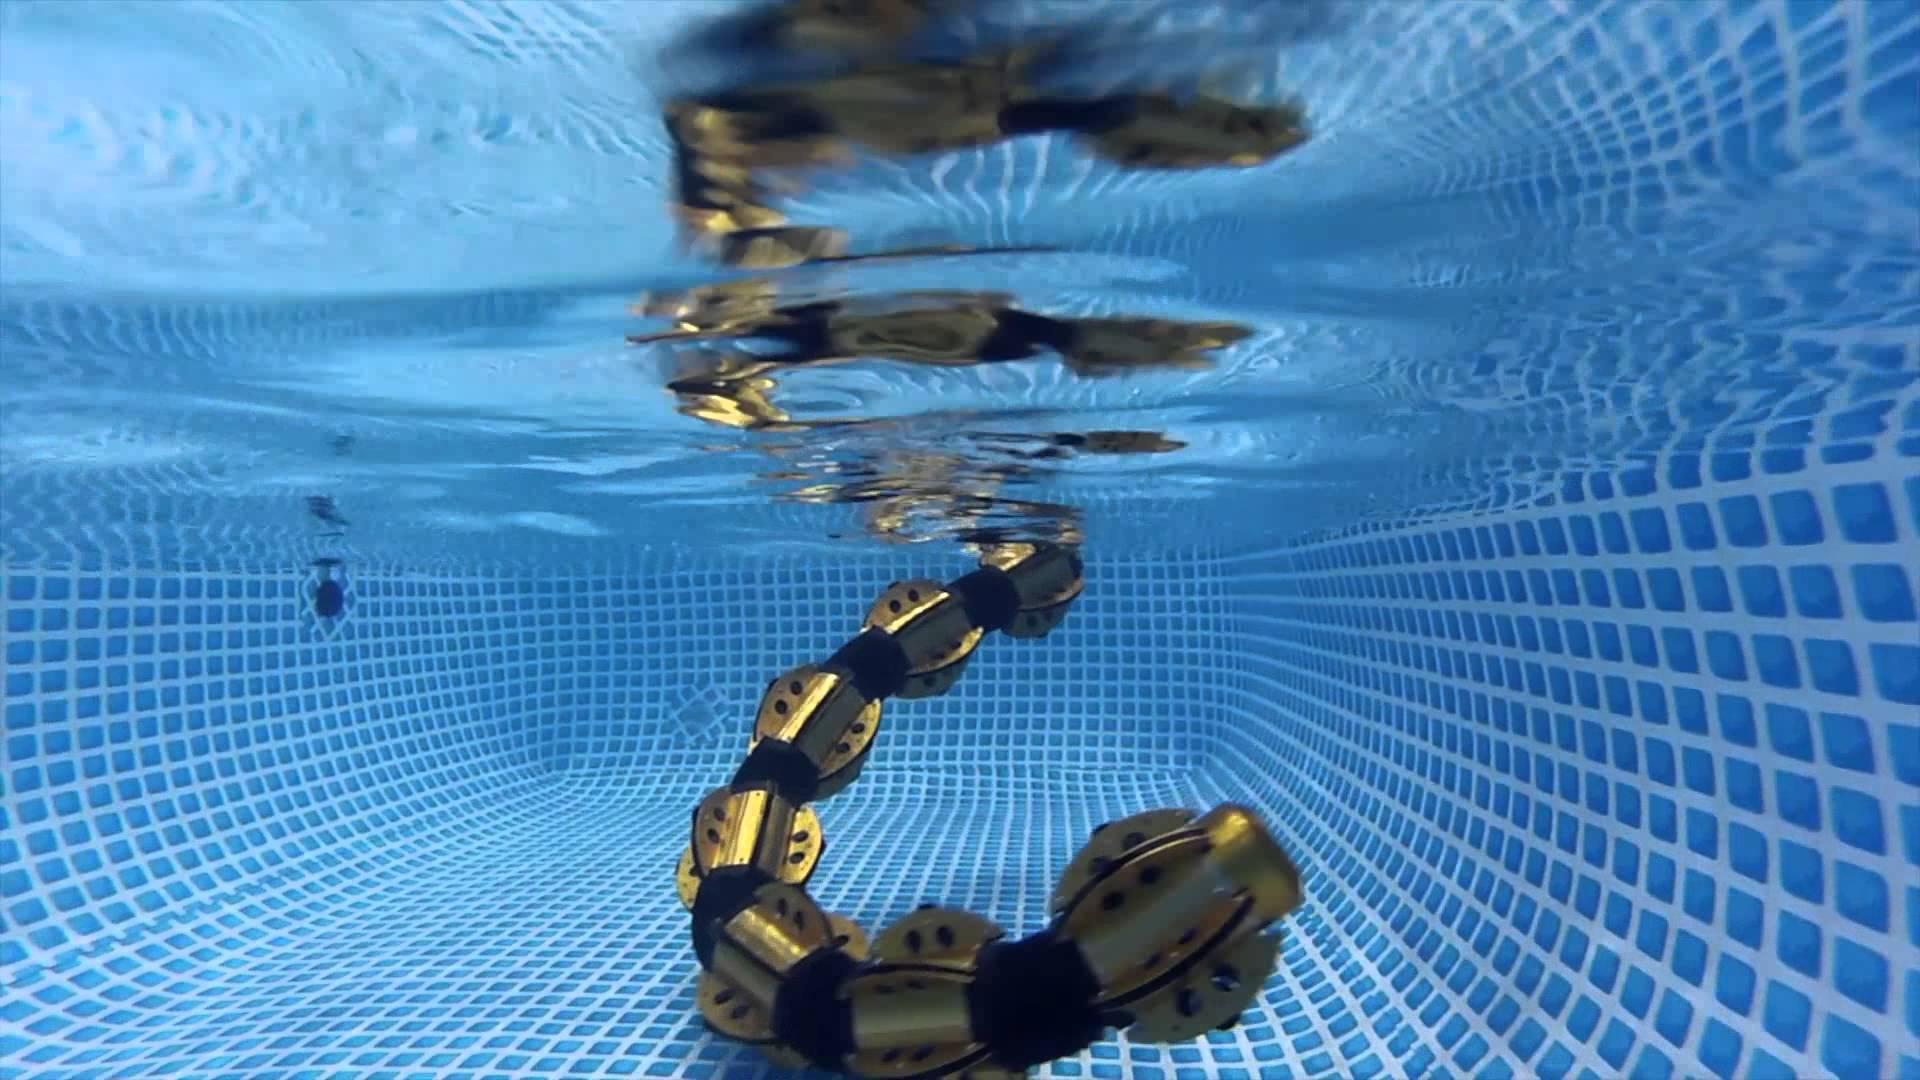 A Slithering Snake Robot That Can Swim Underwater With Unsettling Ease